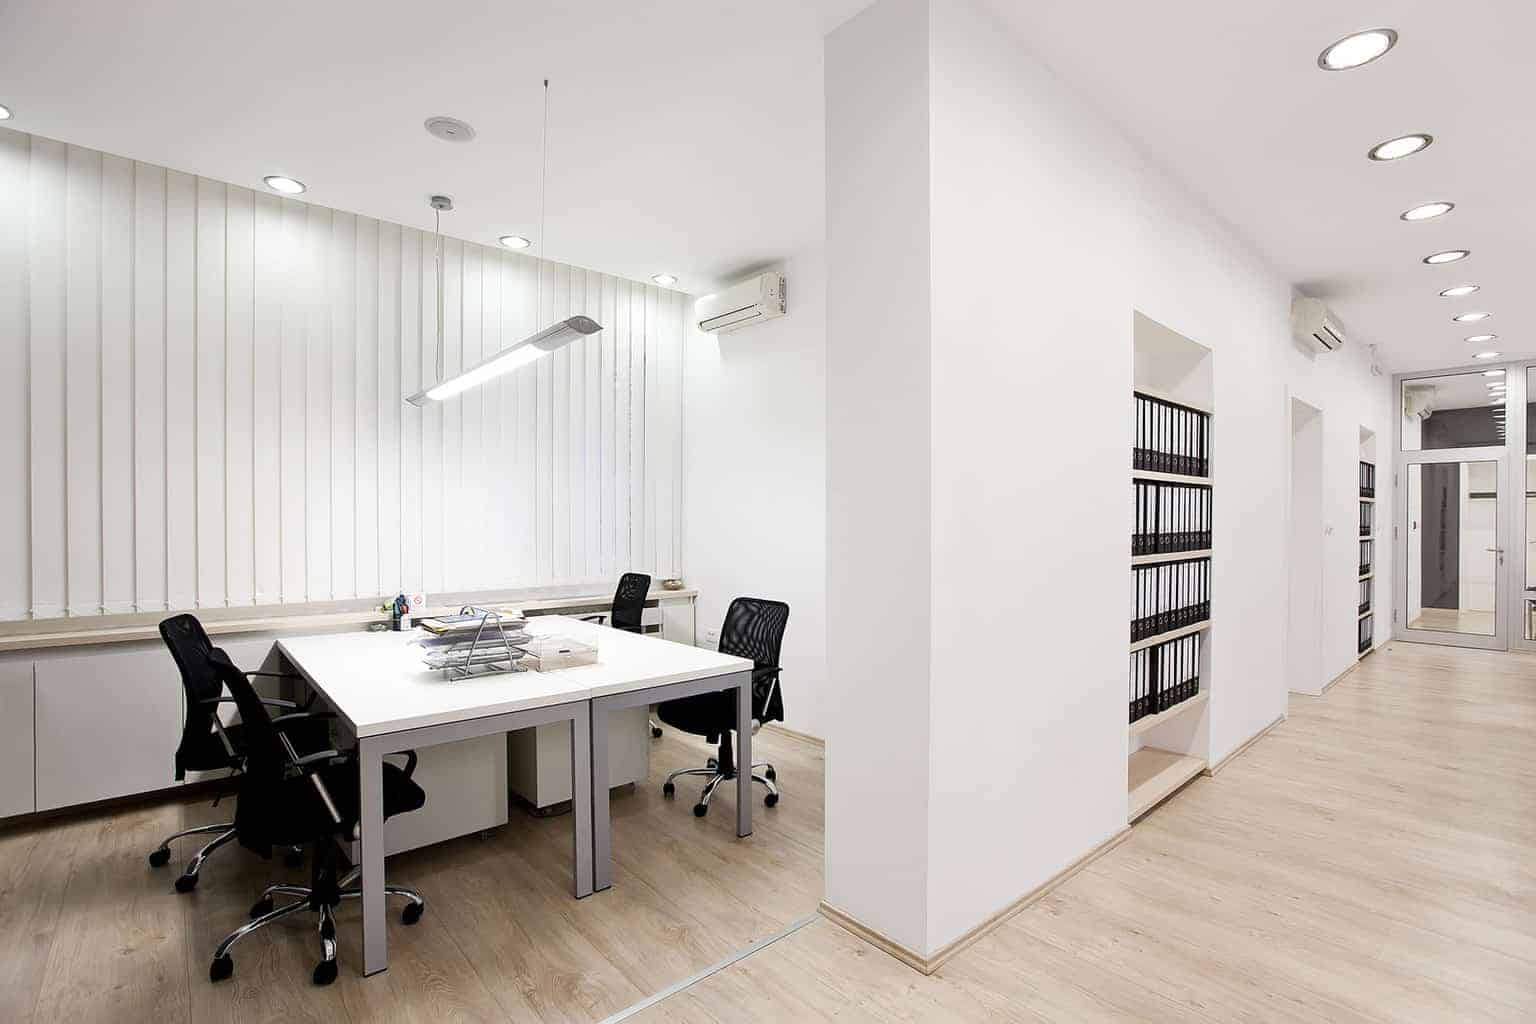 Partition Walls in an Office